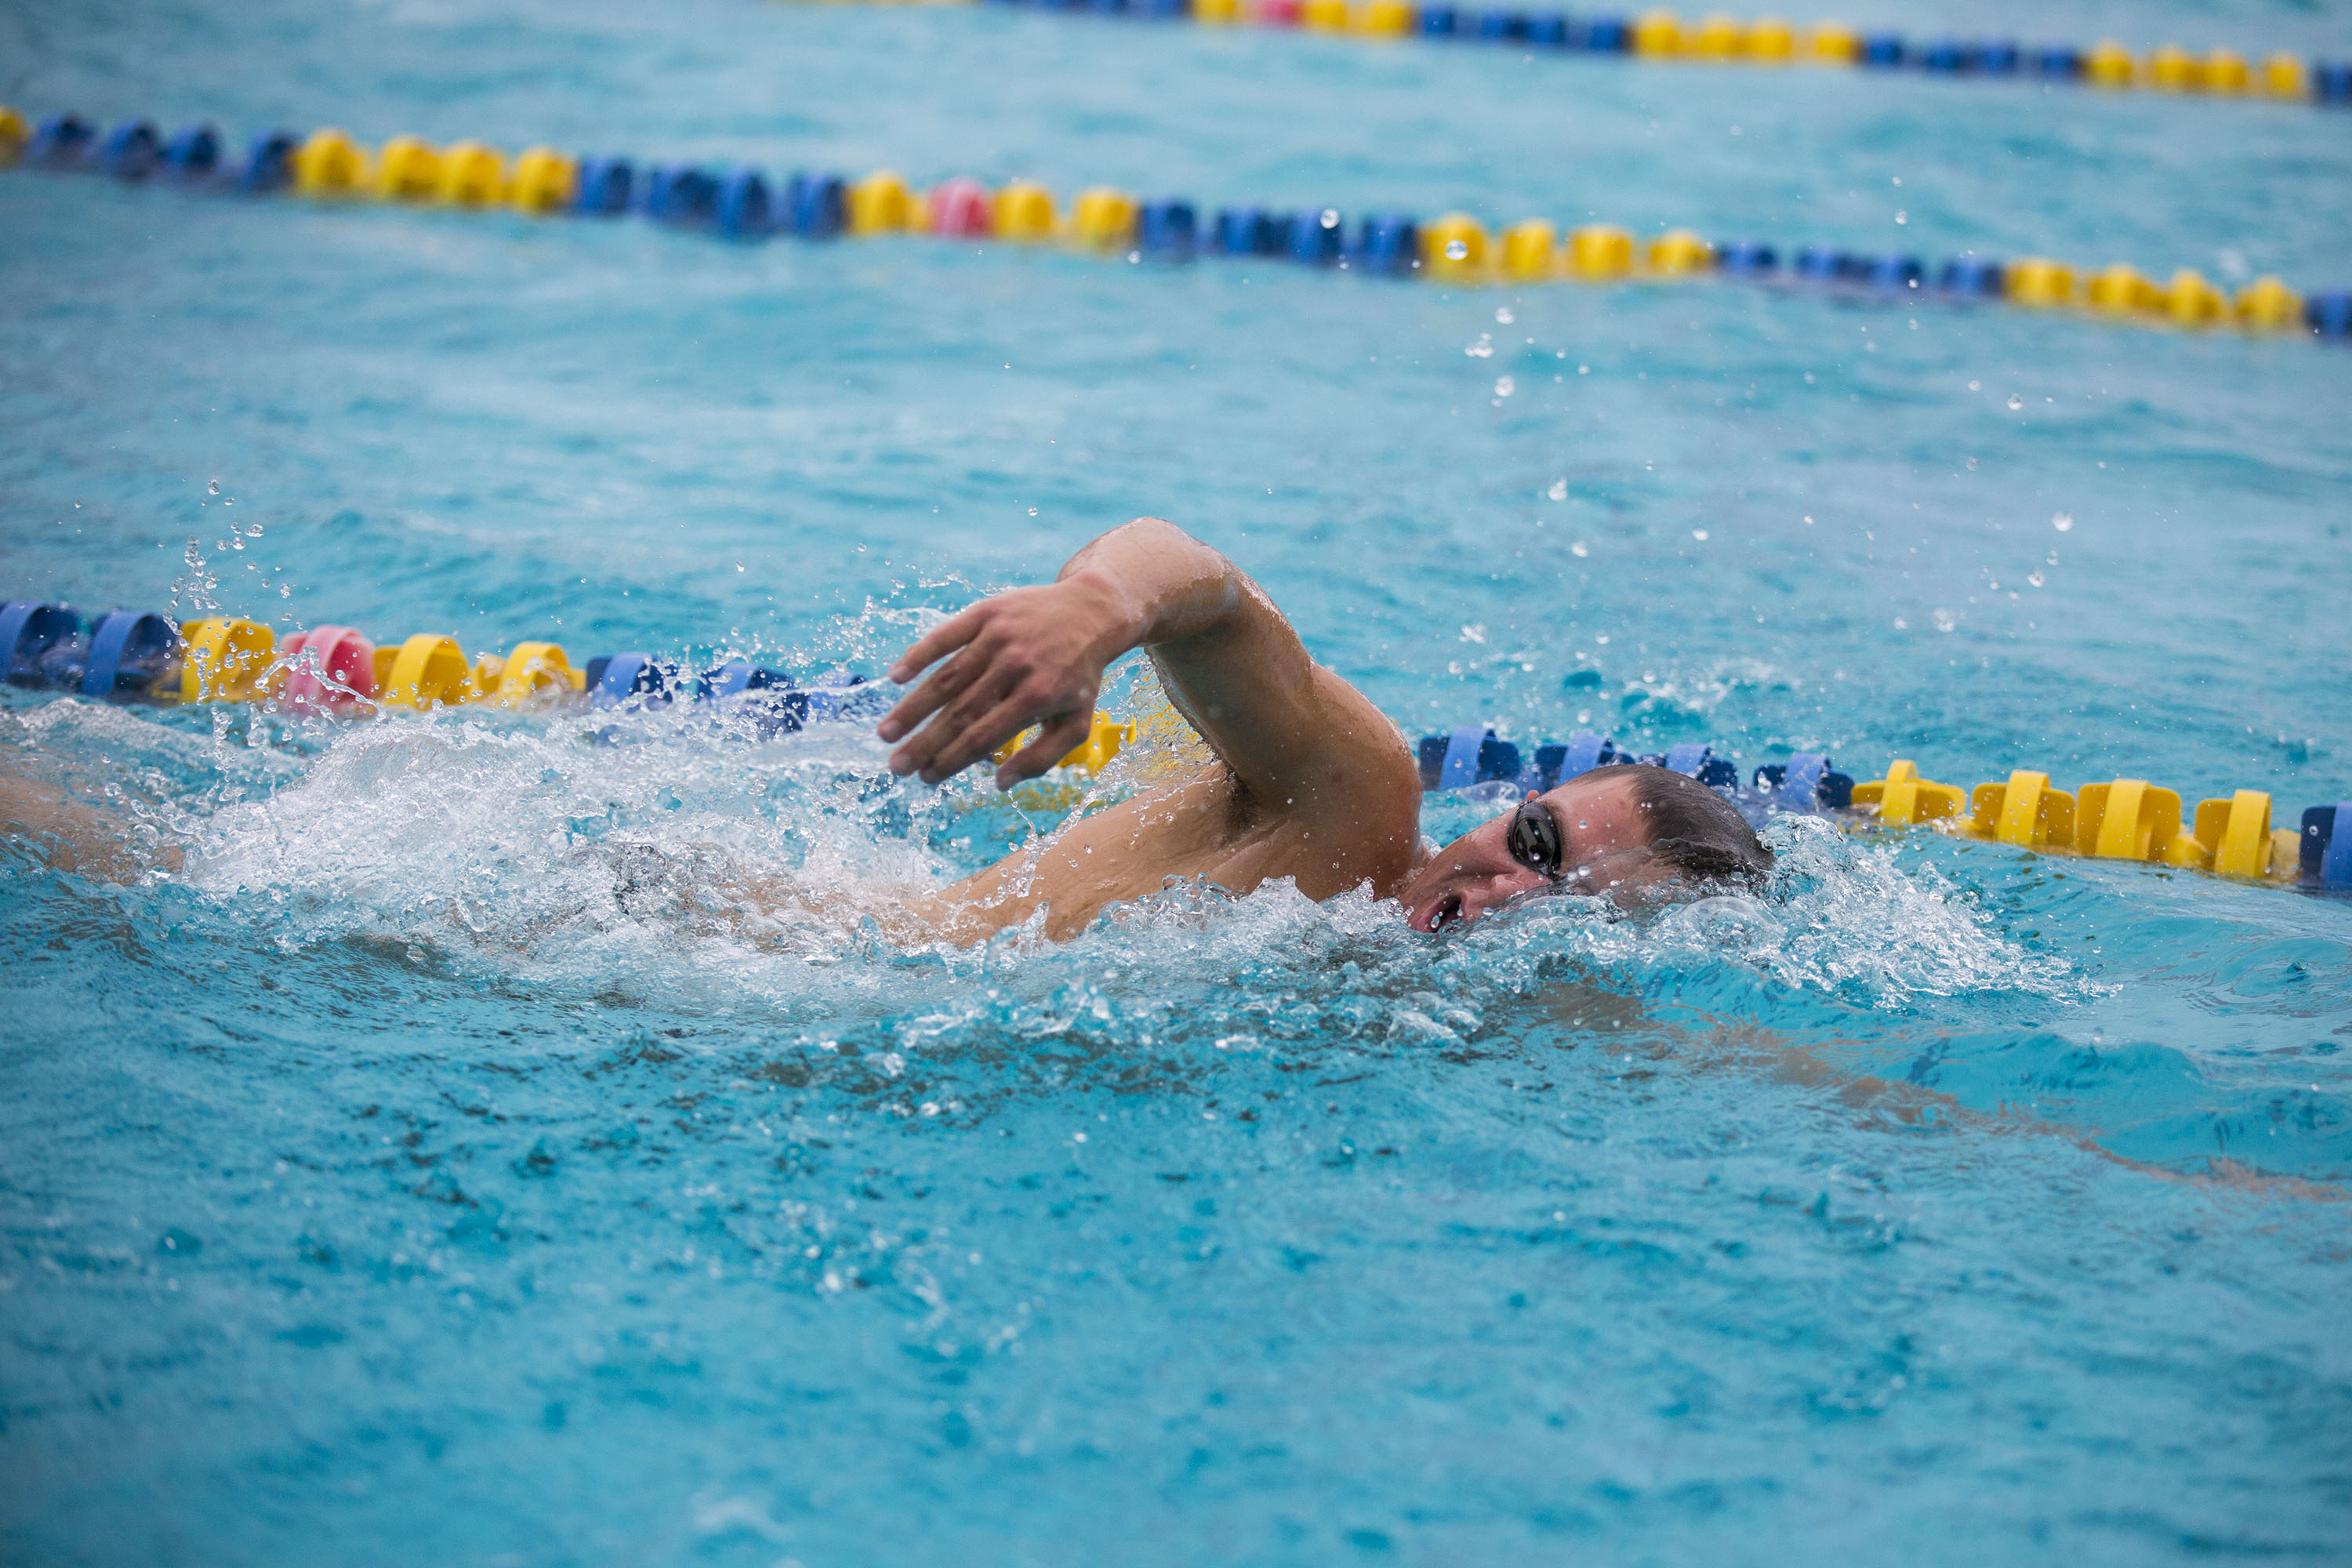 The UCSC swim and dive team prepares to compete in the Pacific Collegiate Swim and Dive Conference (PCSC) championships in L.A. in February. Photo by Casey Amaral